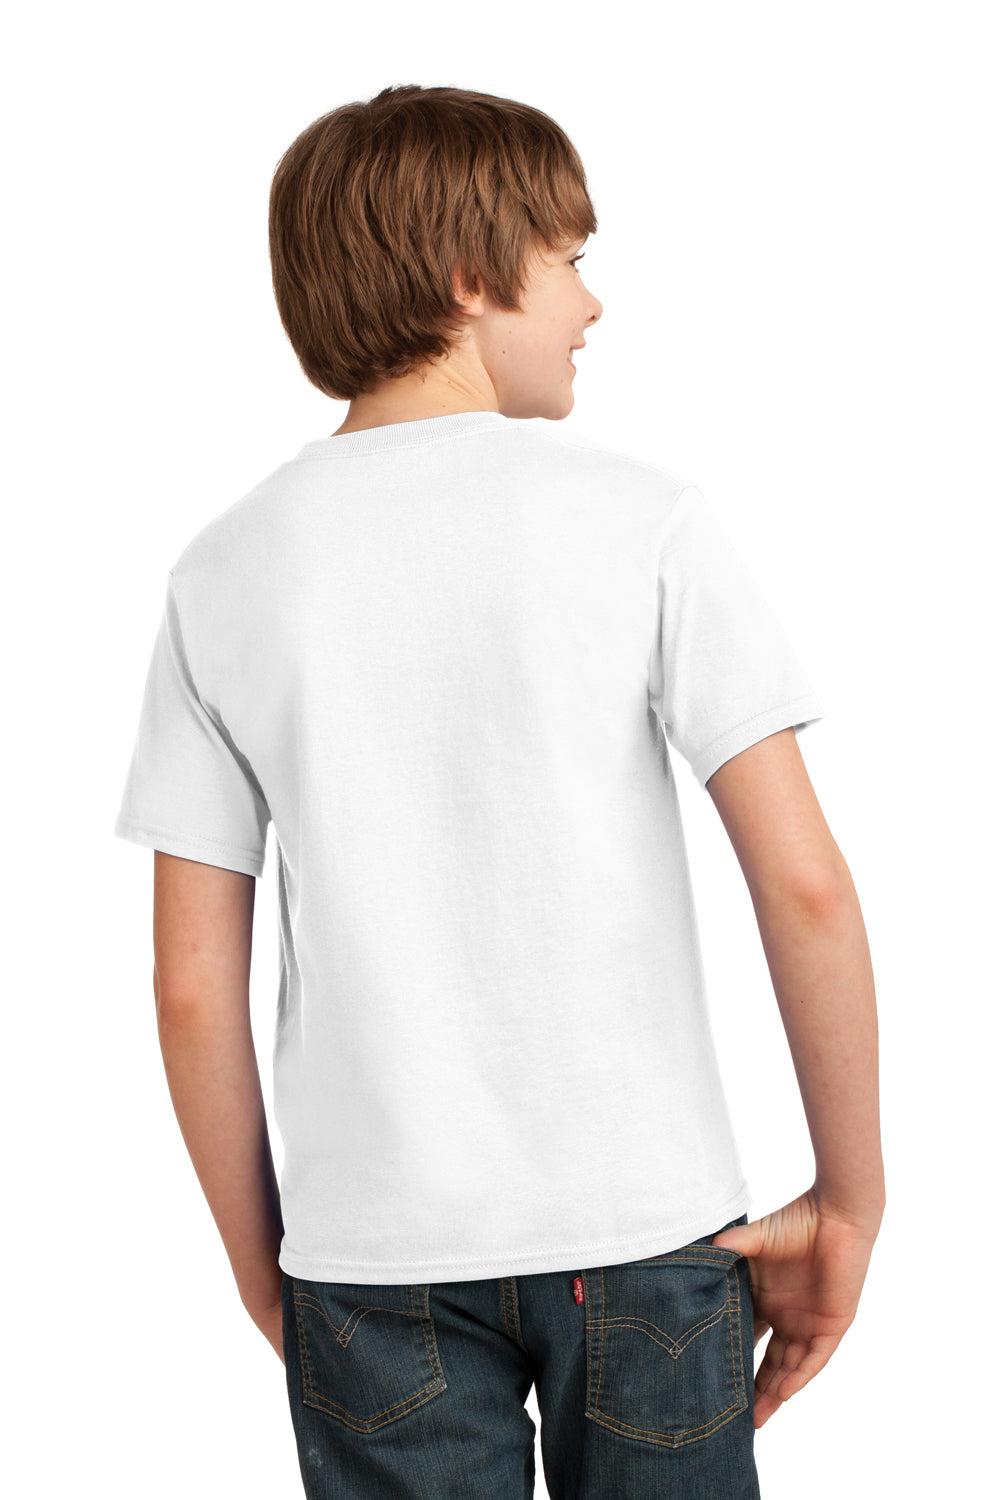 Port & Company PC61Y Youth Essential Short Sleeve Crewneck T-Shirt White Back